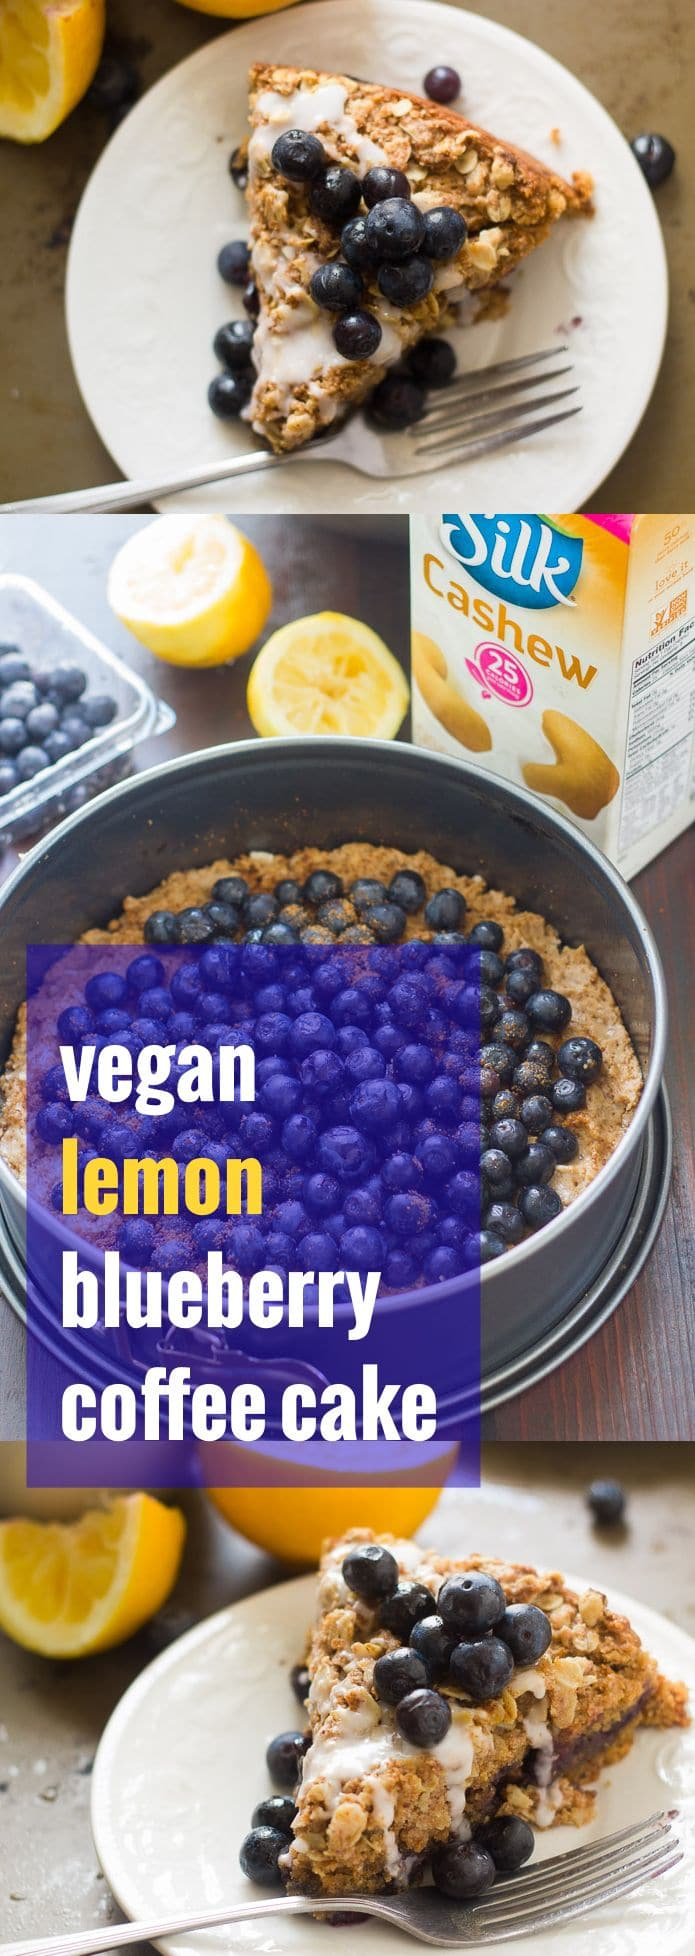 Vegan Lemon Blueberry Coffee Cake